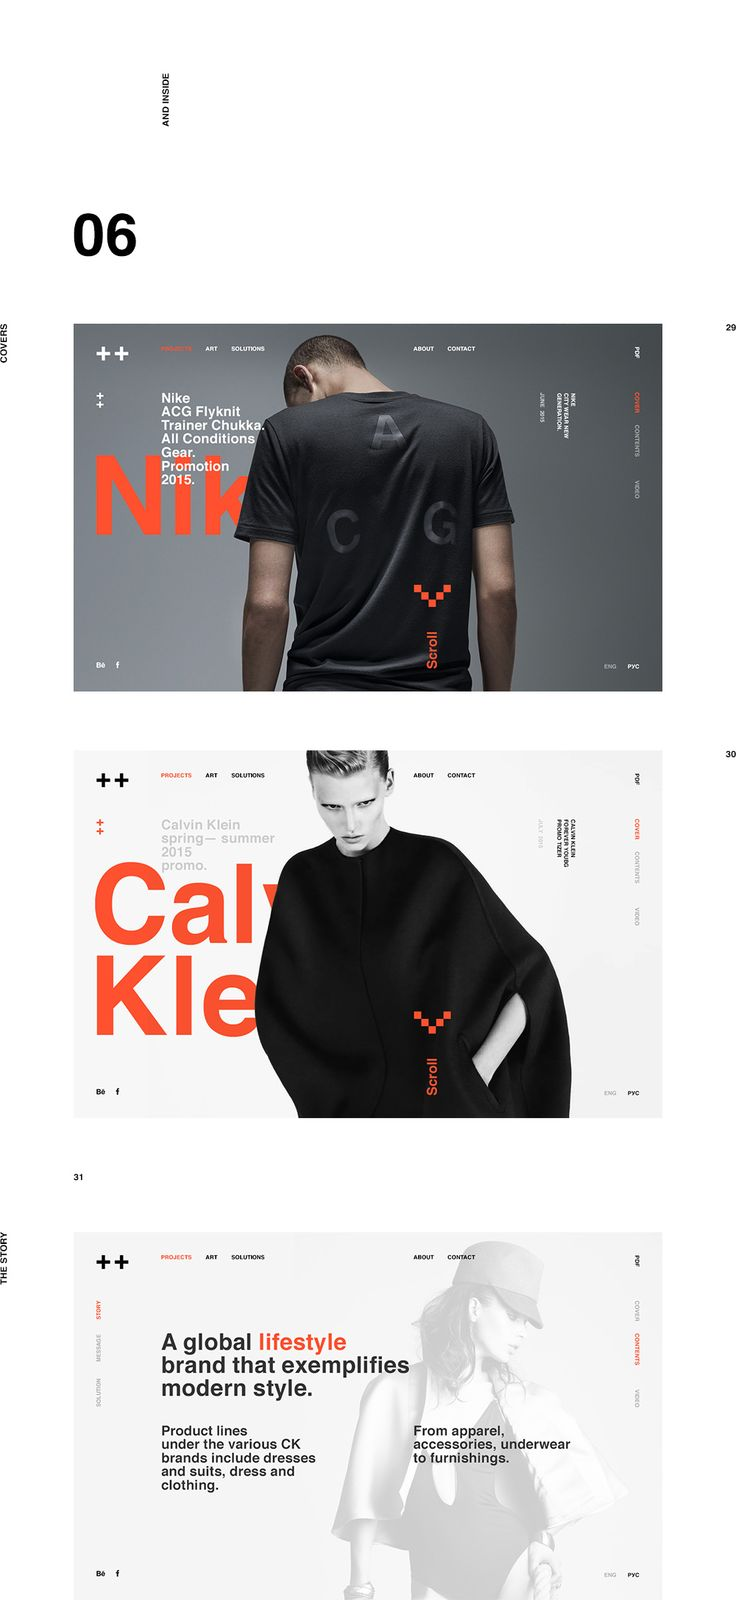 Inty ++ on Behance